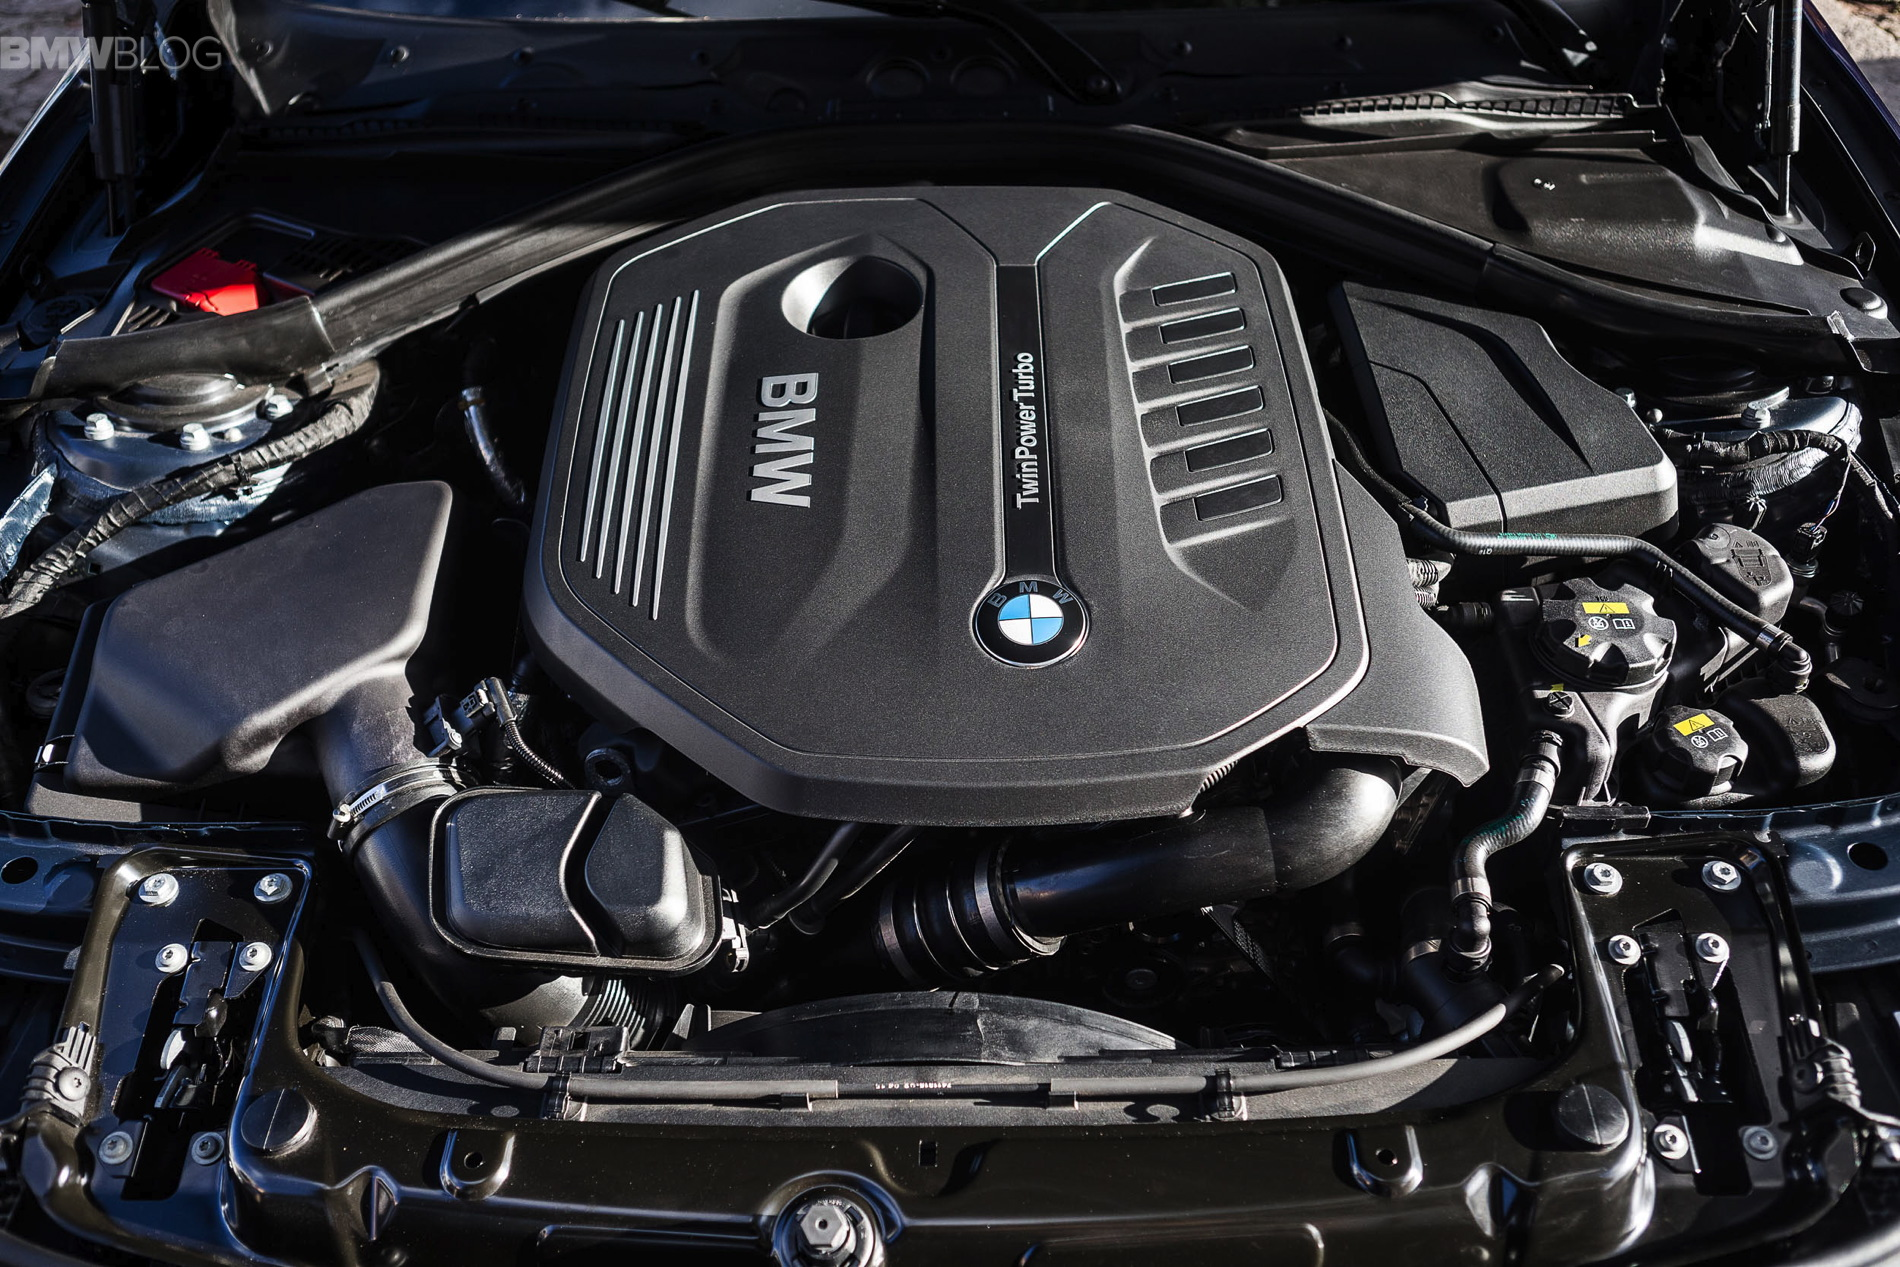 Bmw S B58 3 0 Liter Turbocharged Engine Wins The 2016